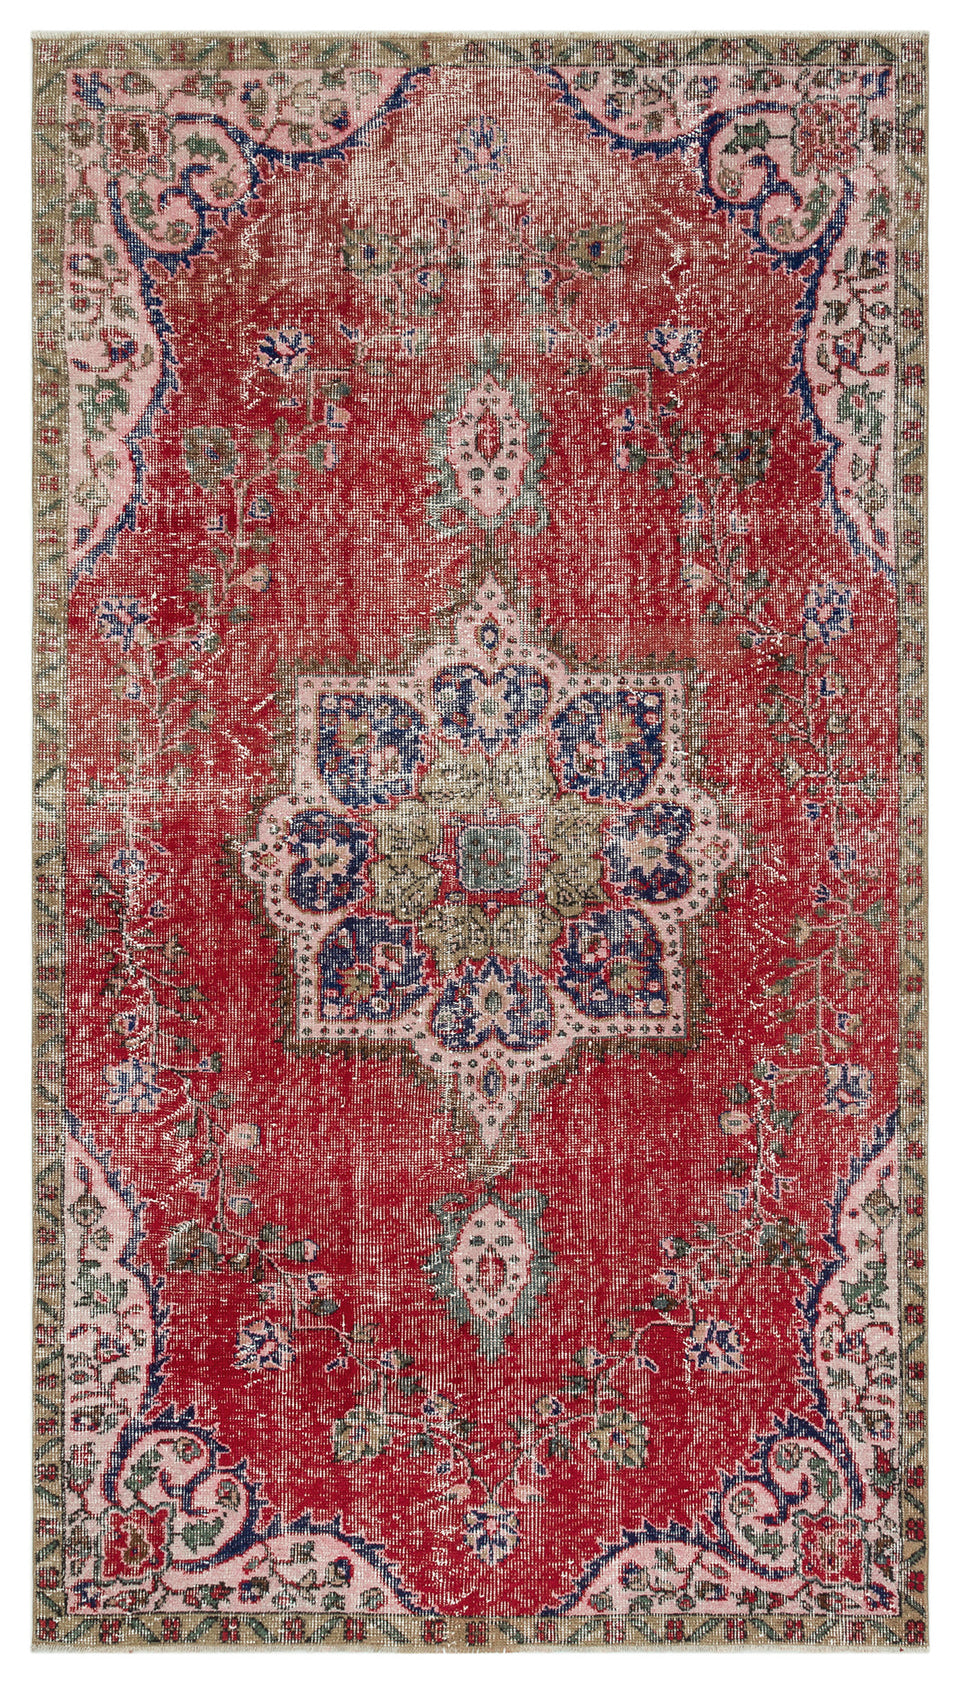 Vintage Turkish Rug, GA34531